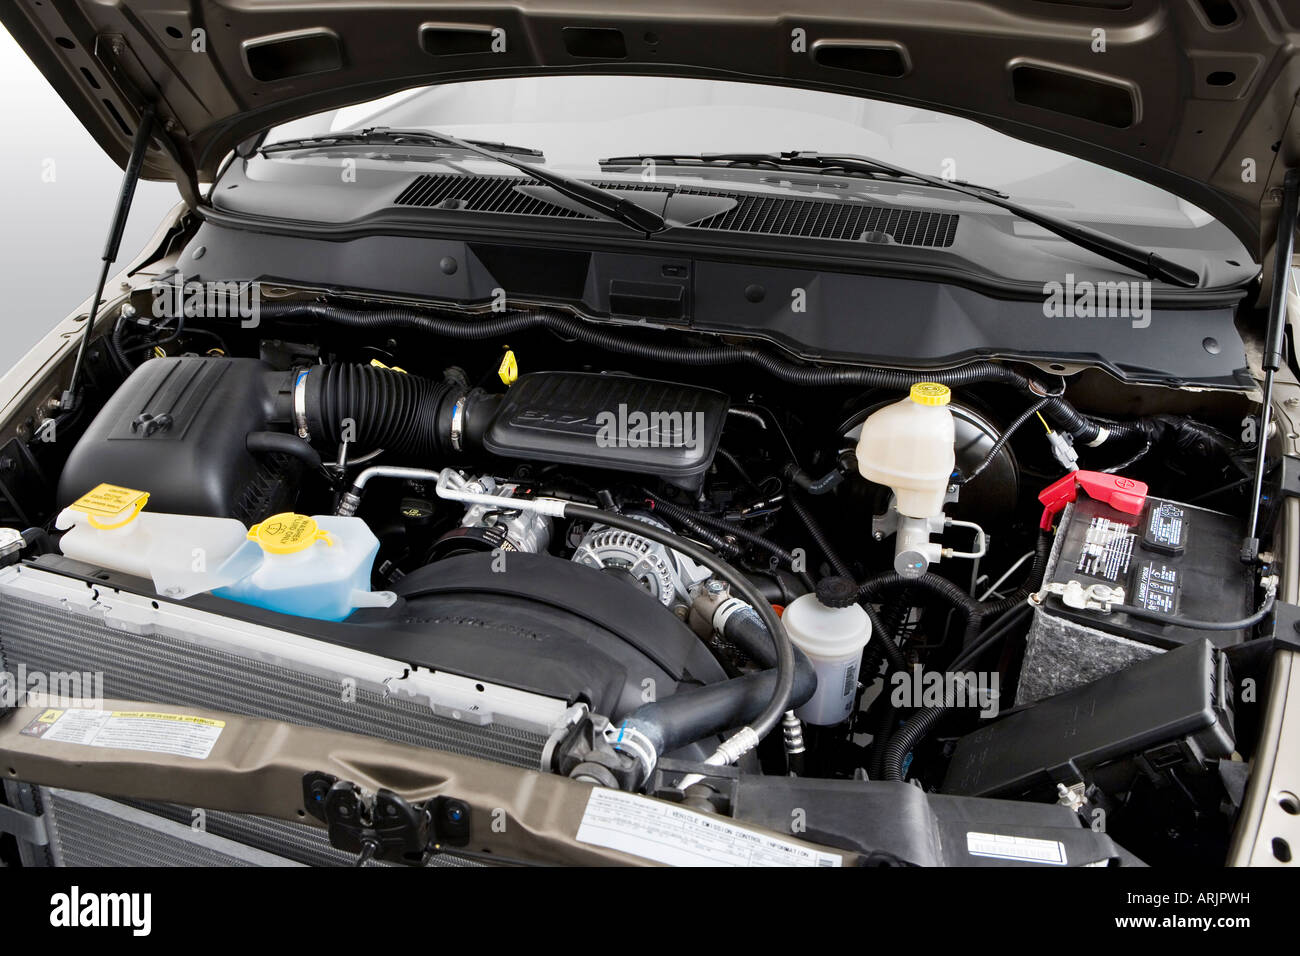 2012 Ram 1500 Engine Dodge In Beige Stock Photo Alamy 1300x956